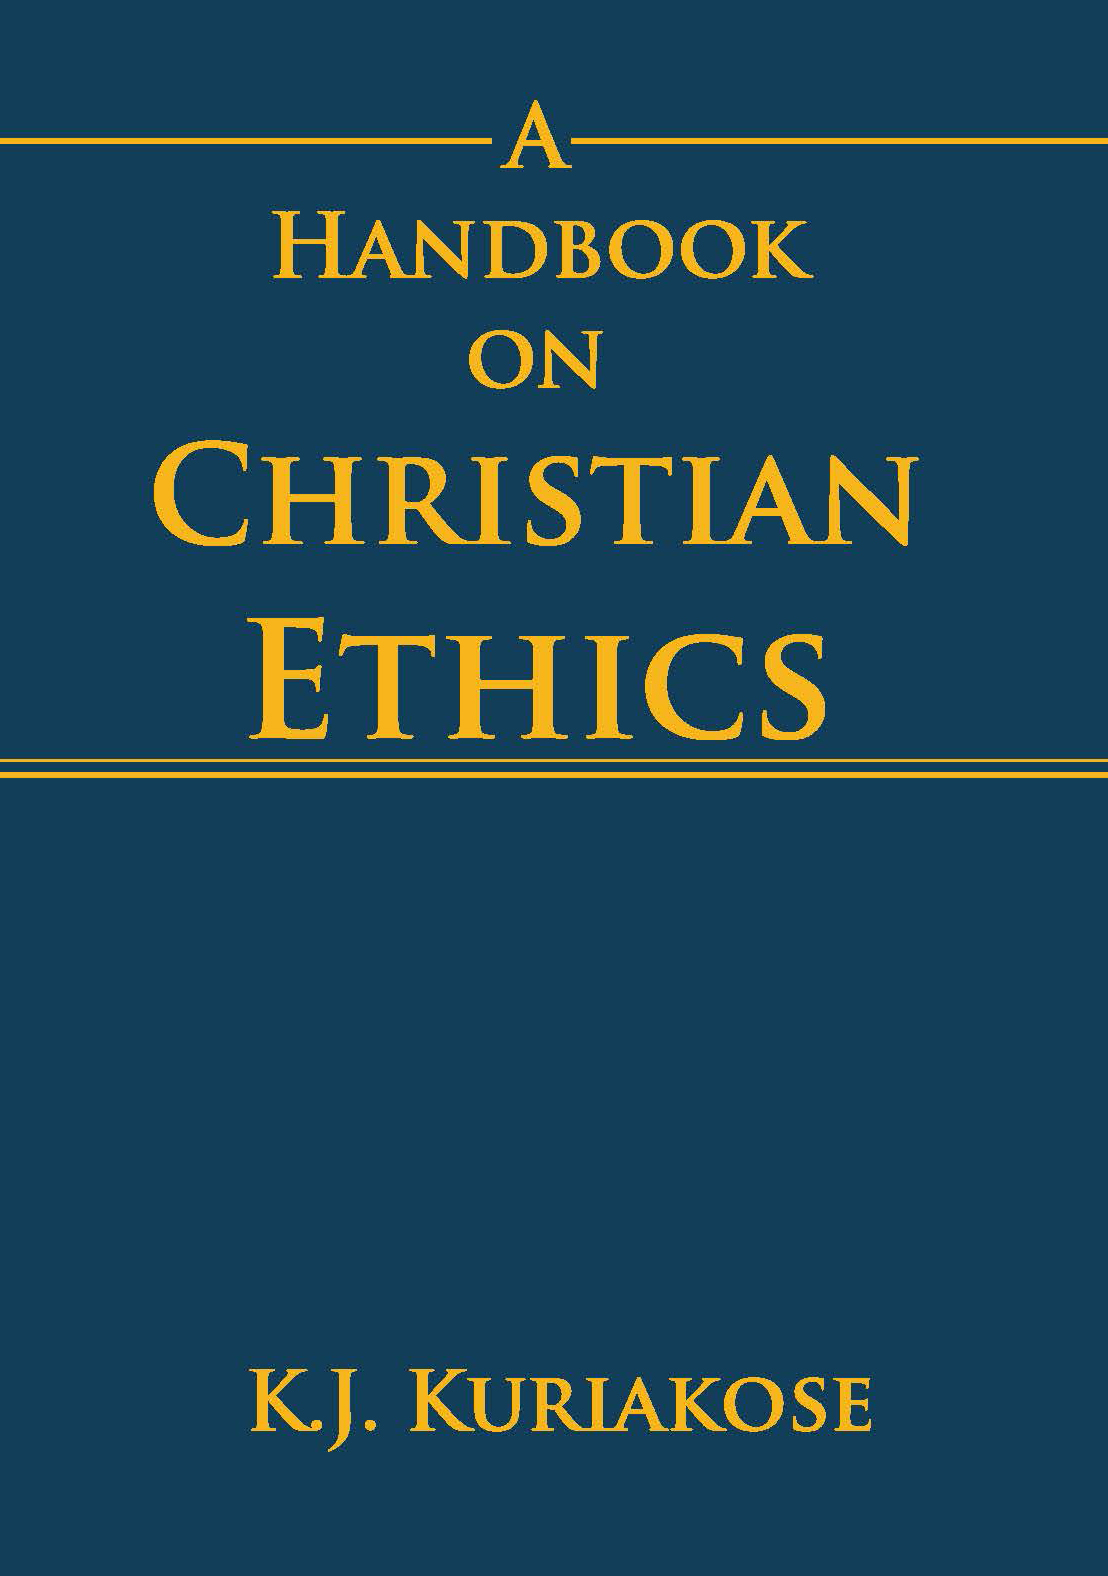 A Handbook on Christian Ethics